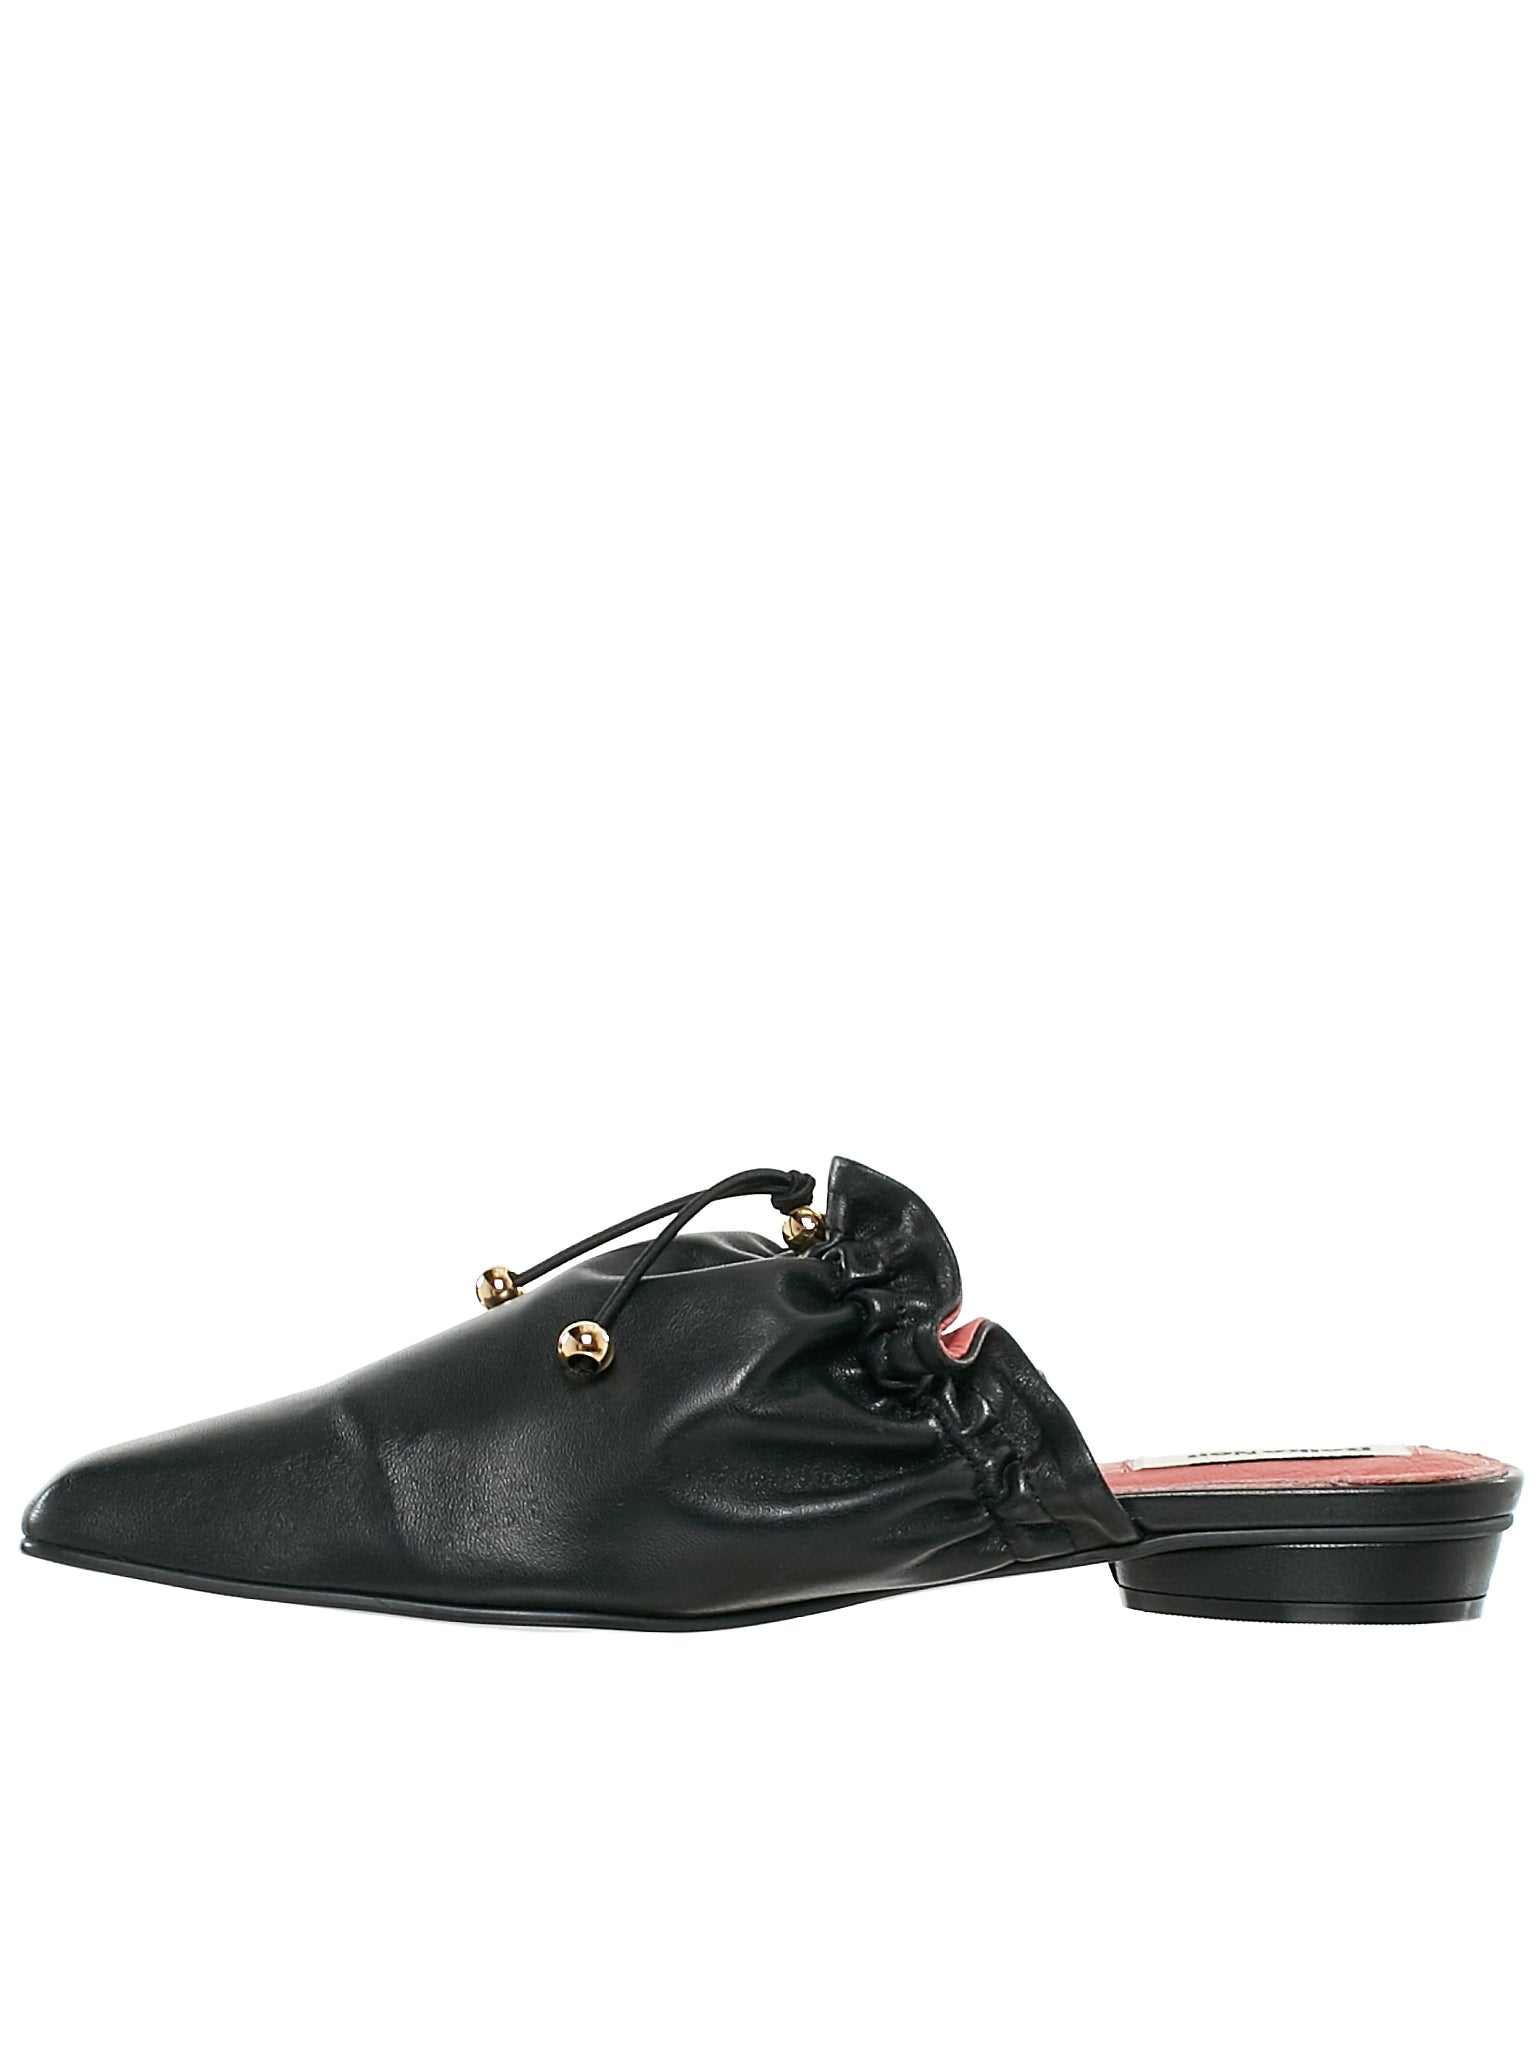 Reike Nen Slippers - Hlorenzo Back